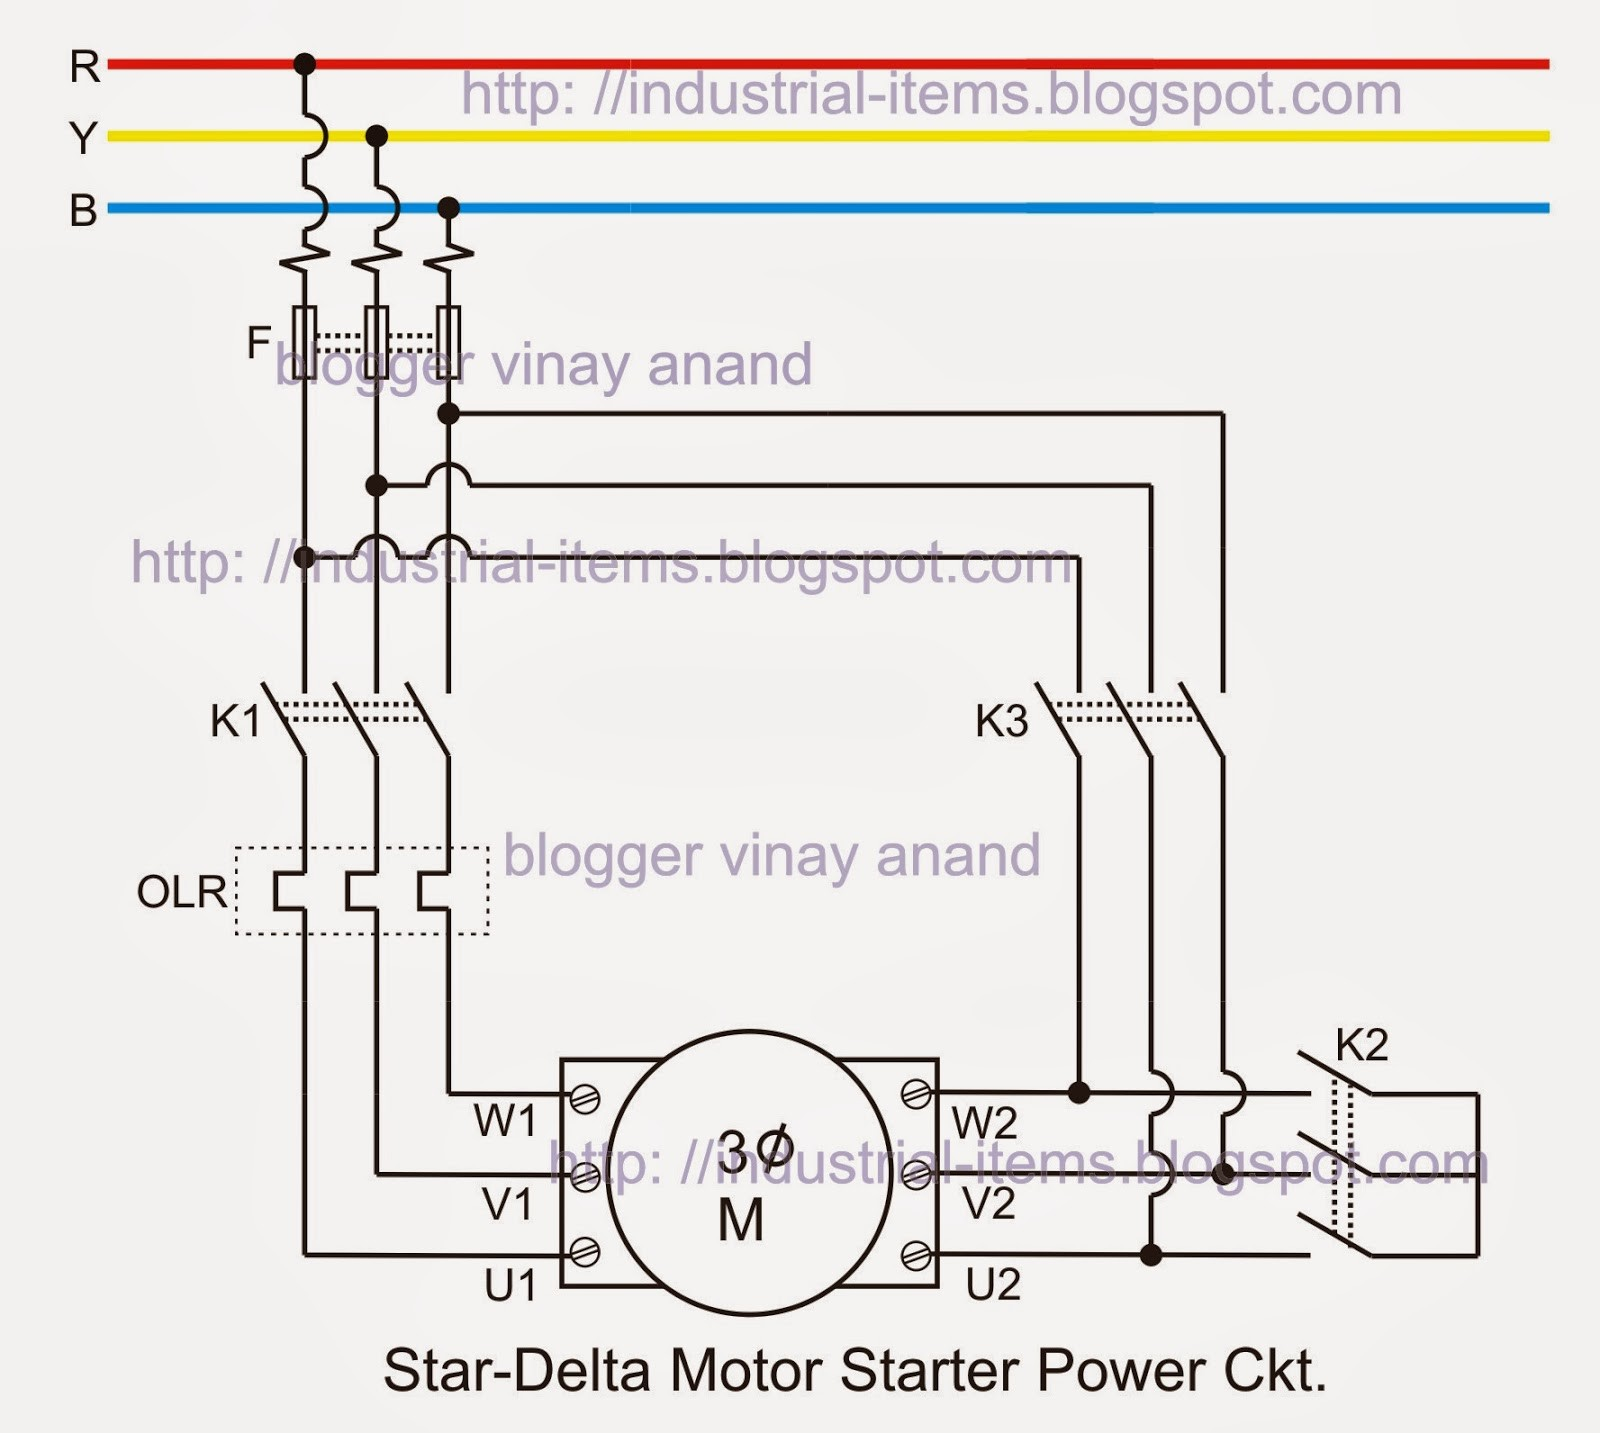 3 Phase Starter Wiring Diagram Tutorials Articles Star Delta Starter theory Power Circuit Phase Of 3 Phase Starter Wiring Diagram